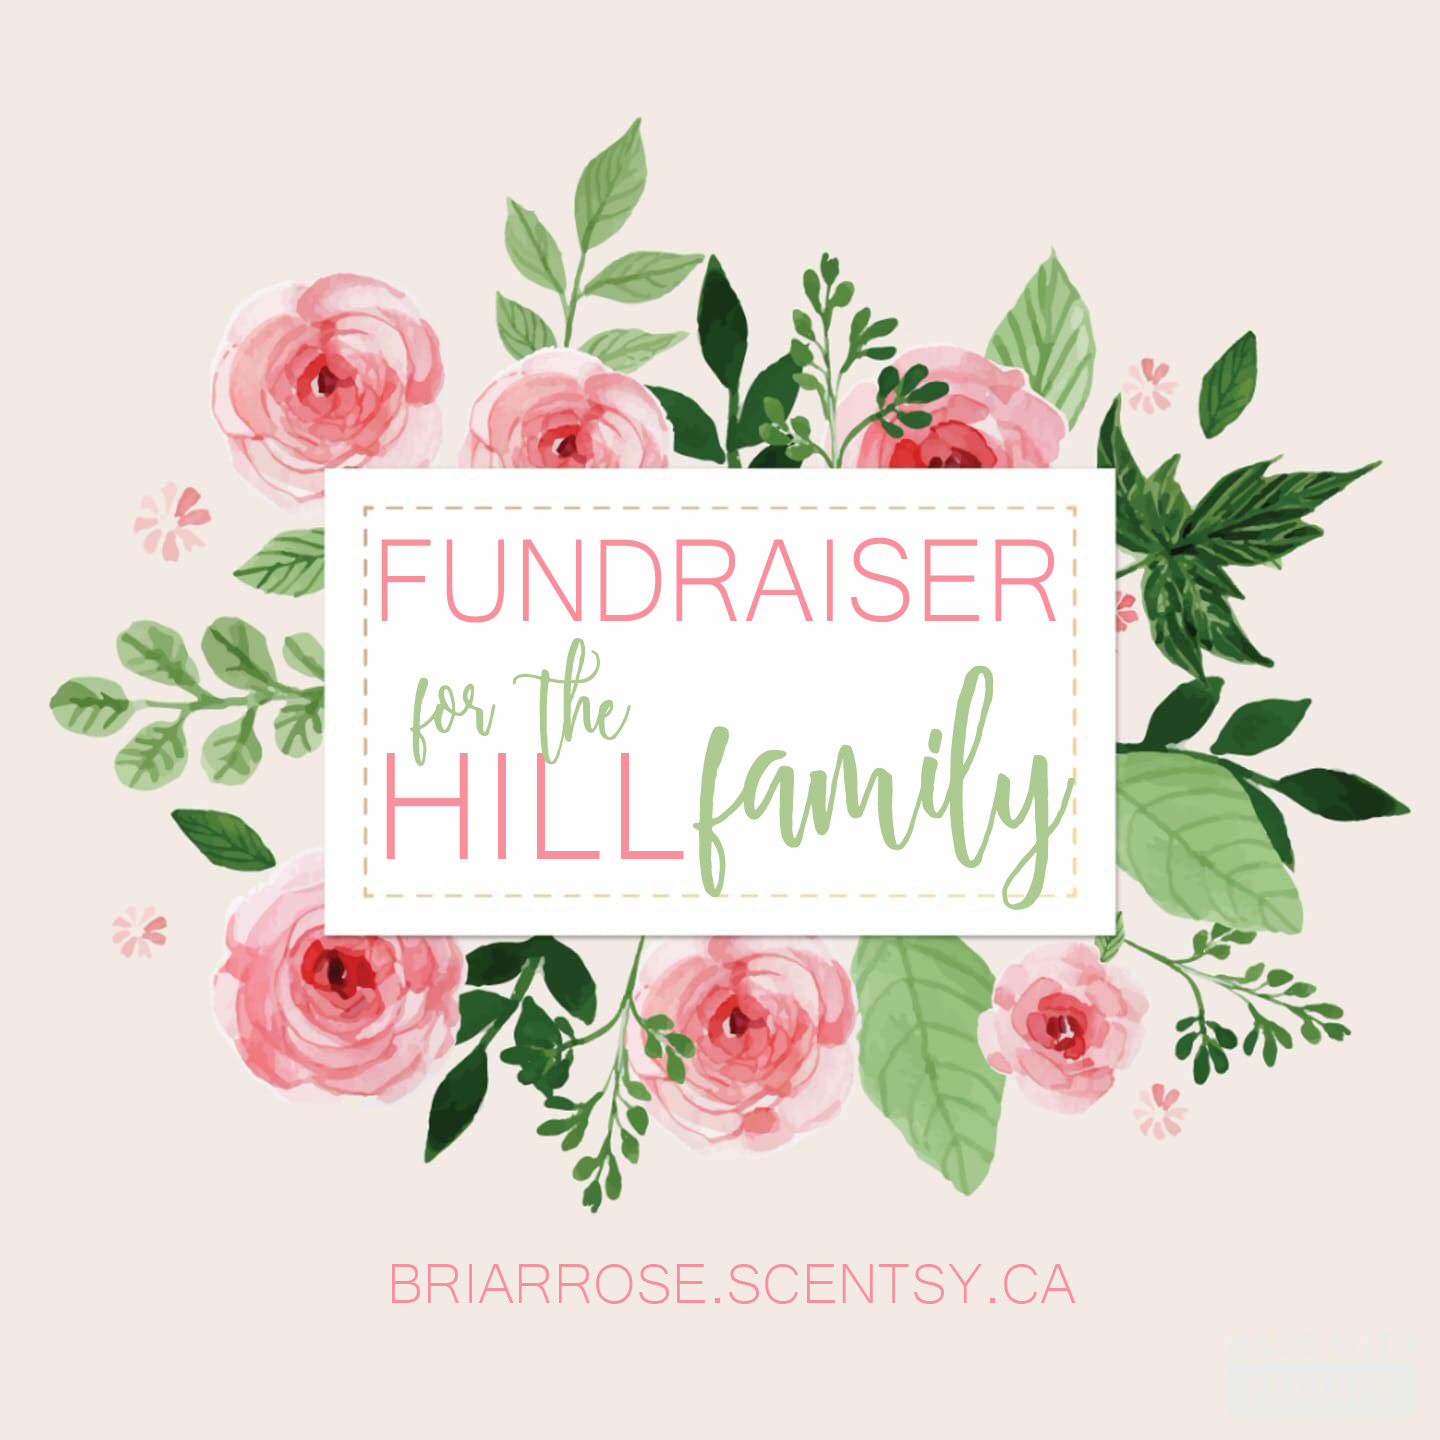 Fundraiser for the Hill family